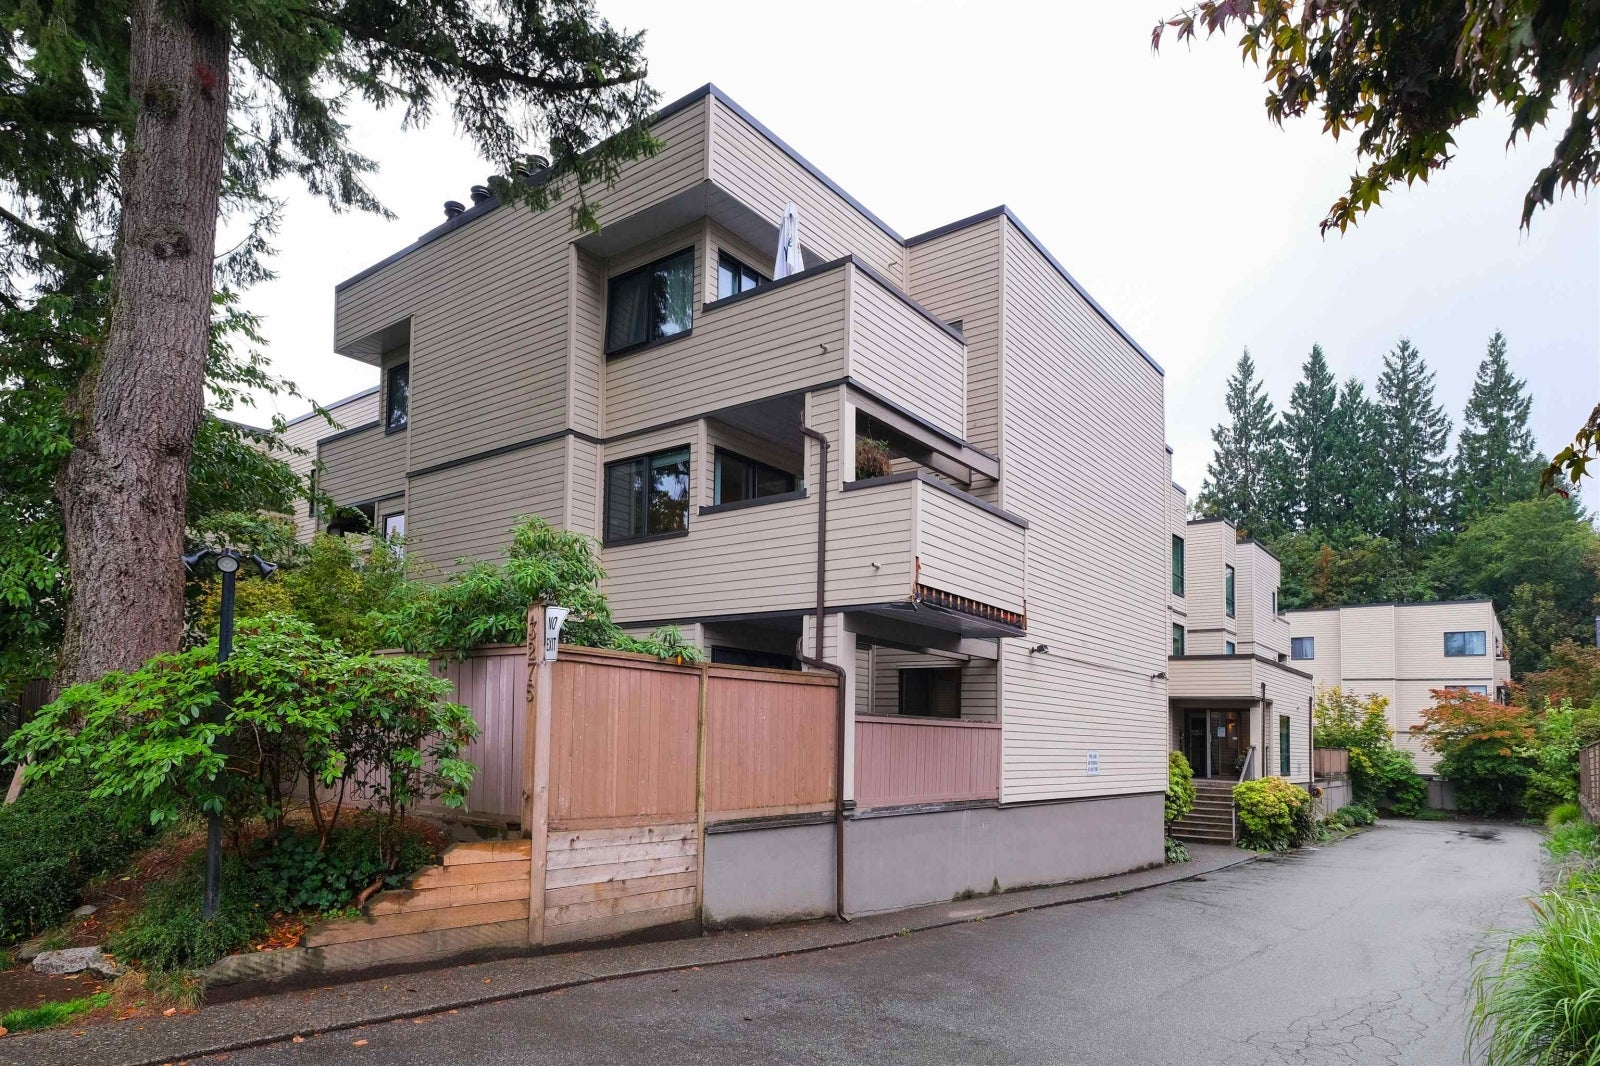 304 3275 MOUNTAIN HIGHWAY - Lynn Valley Apartment/Condo for sale, 2 Bedrooms (R2618420) #1